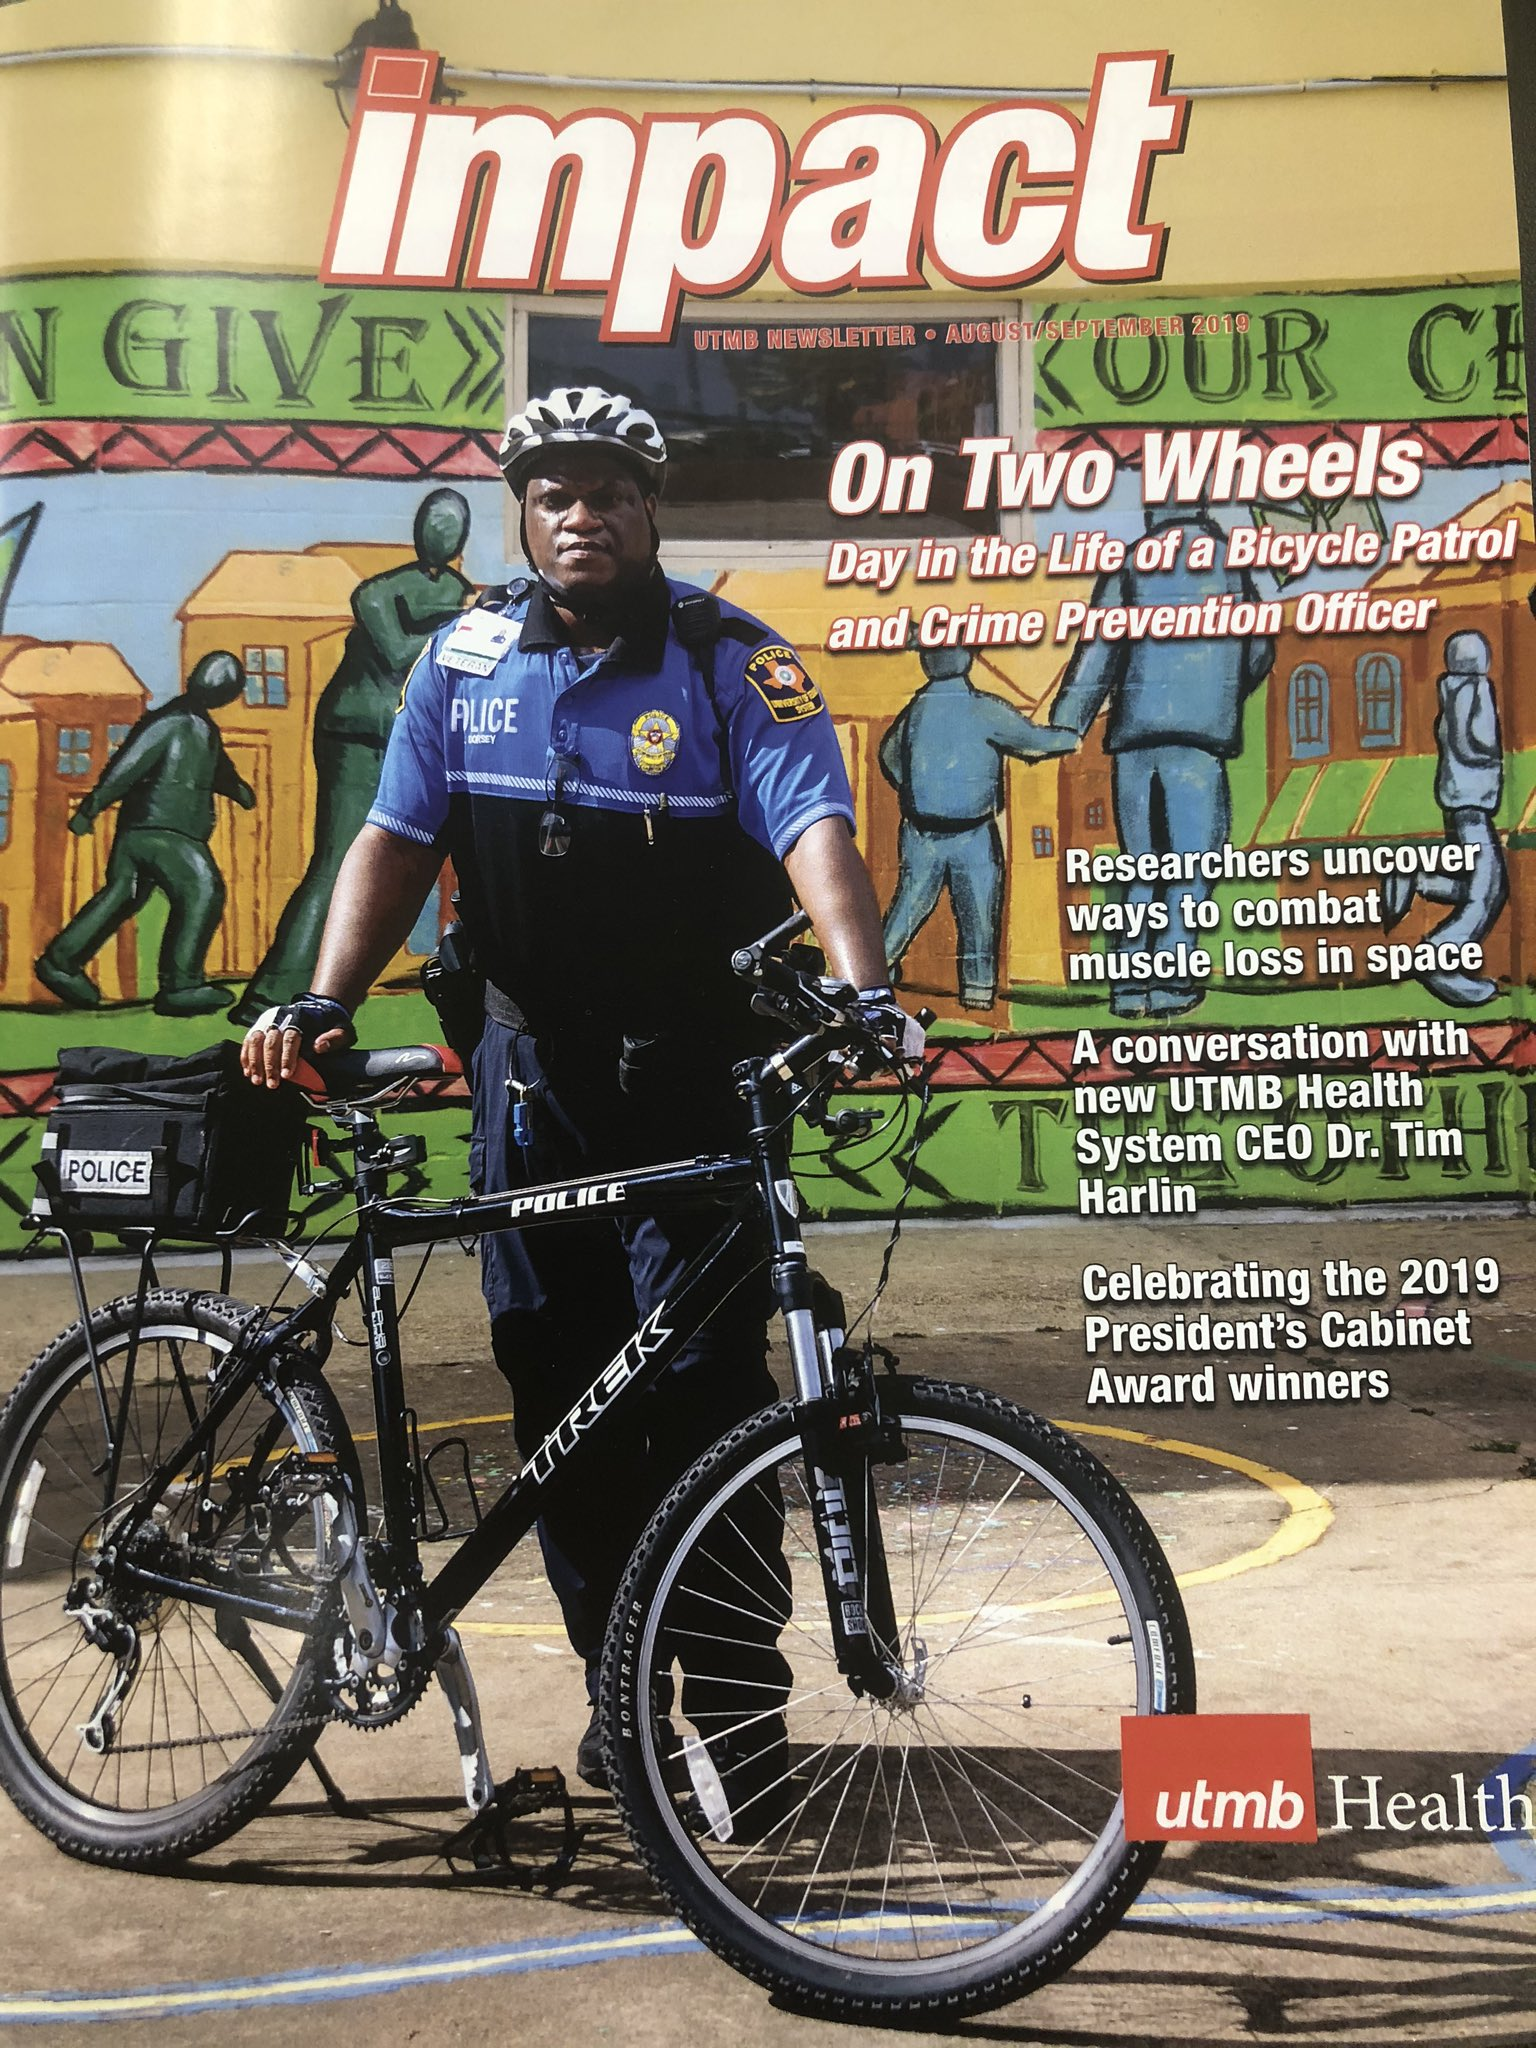 Bicycle Patrol and Crime Prevention Officer